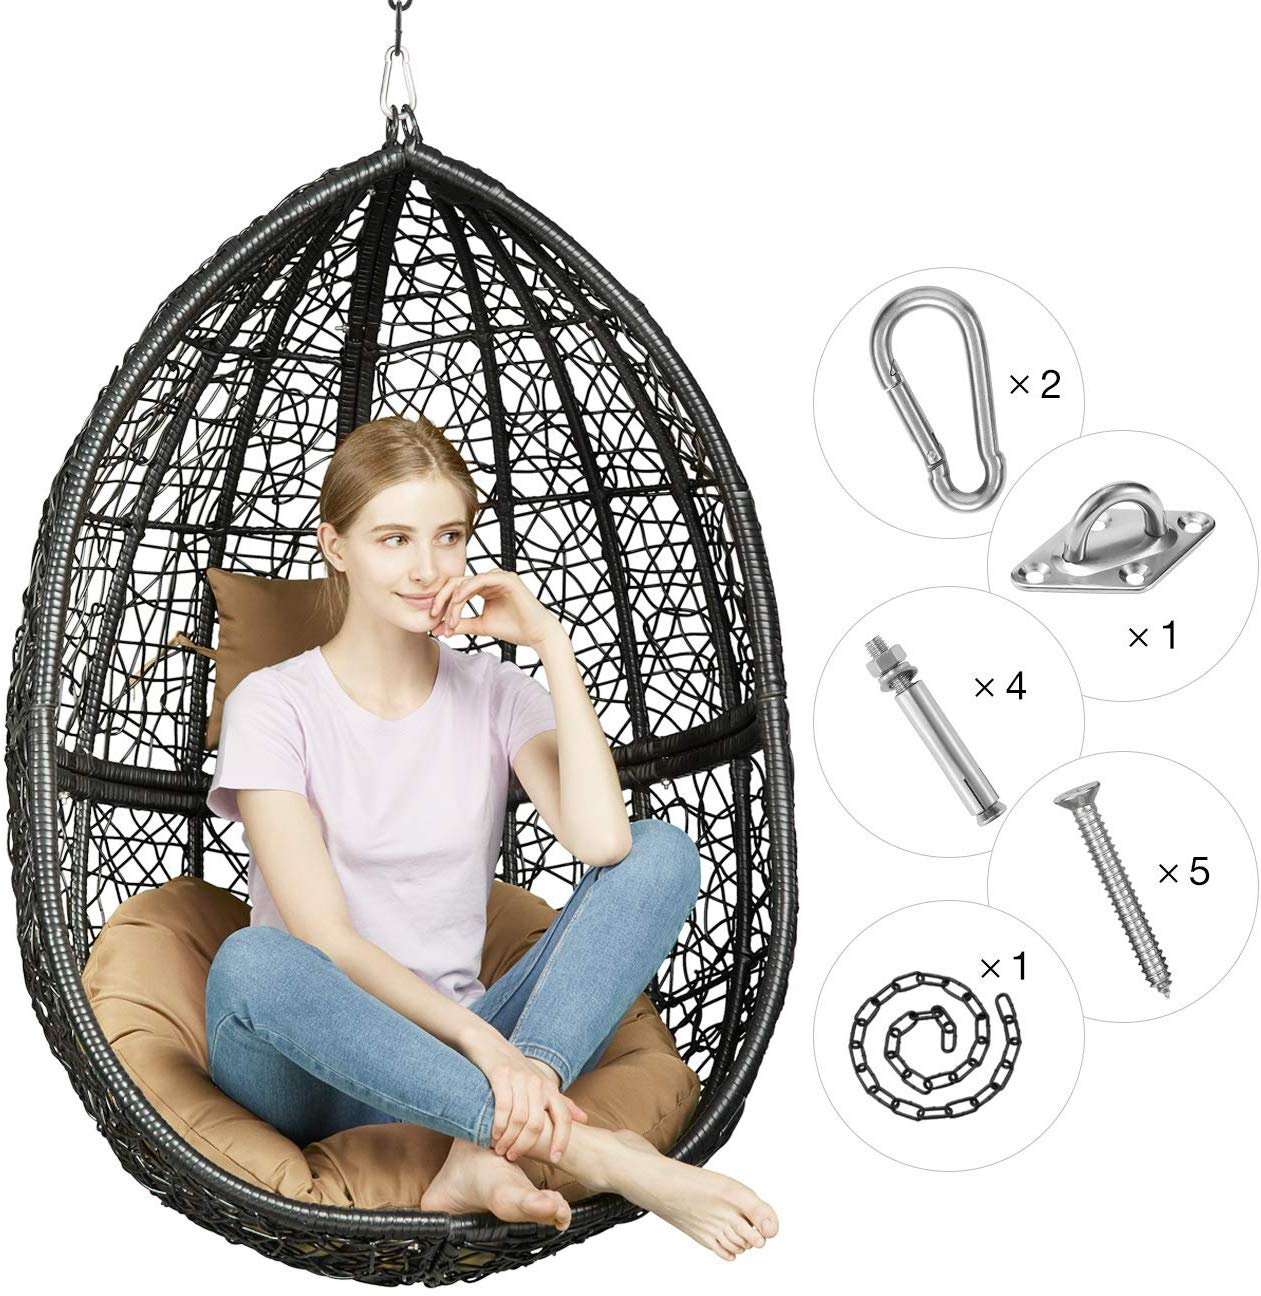 Best Egg Chair In 2020 Portable And Comfortable